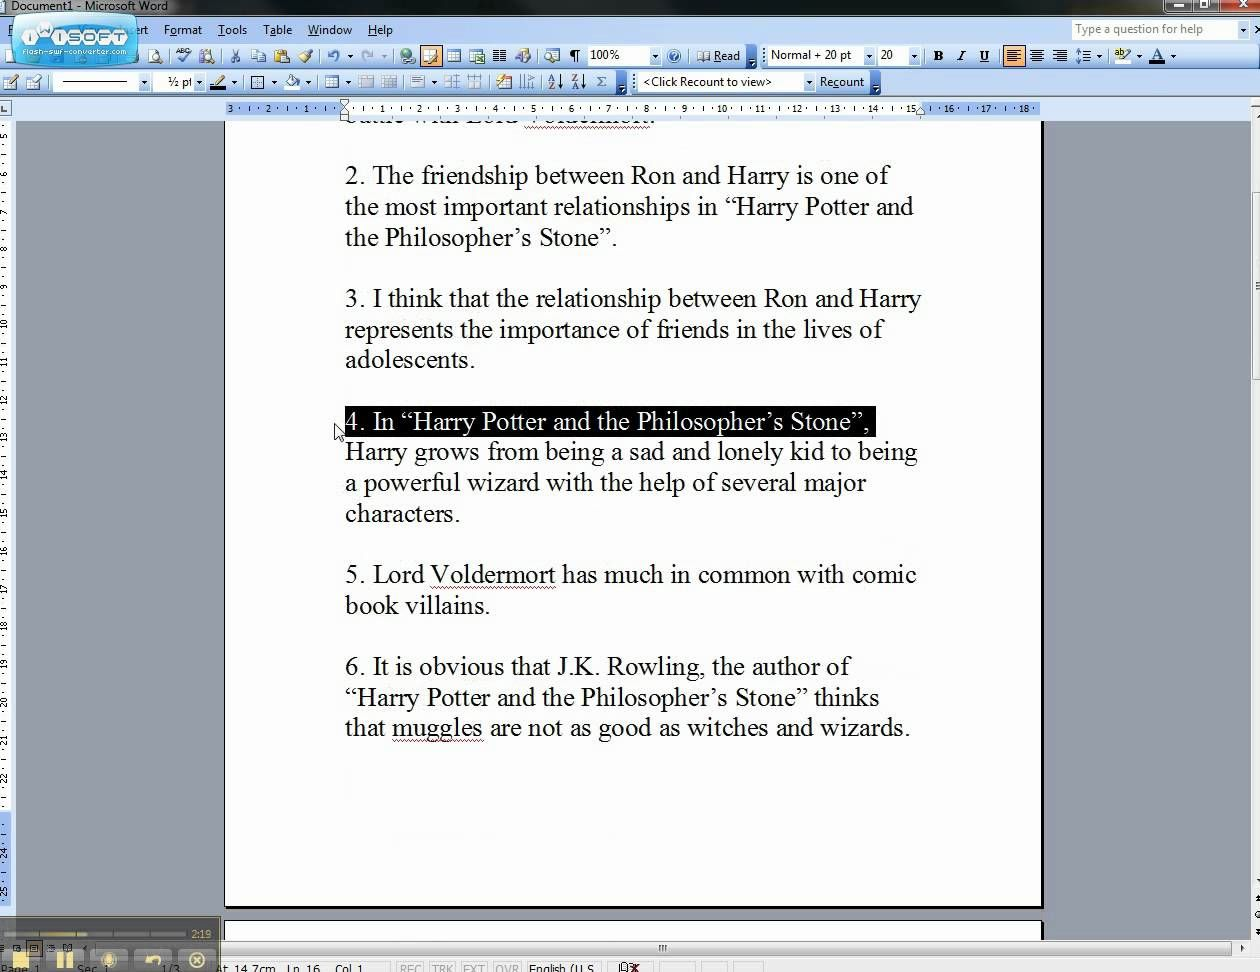 best argumentative essays choose from the best argumentative best argumentative essays choose from the best 286 argumentative and persuasive essay topics 200